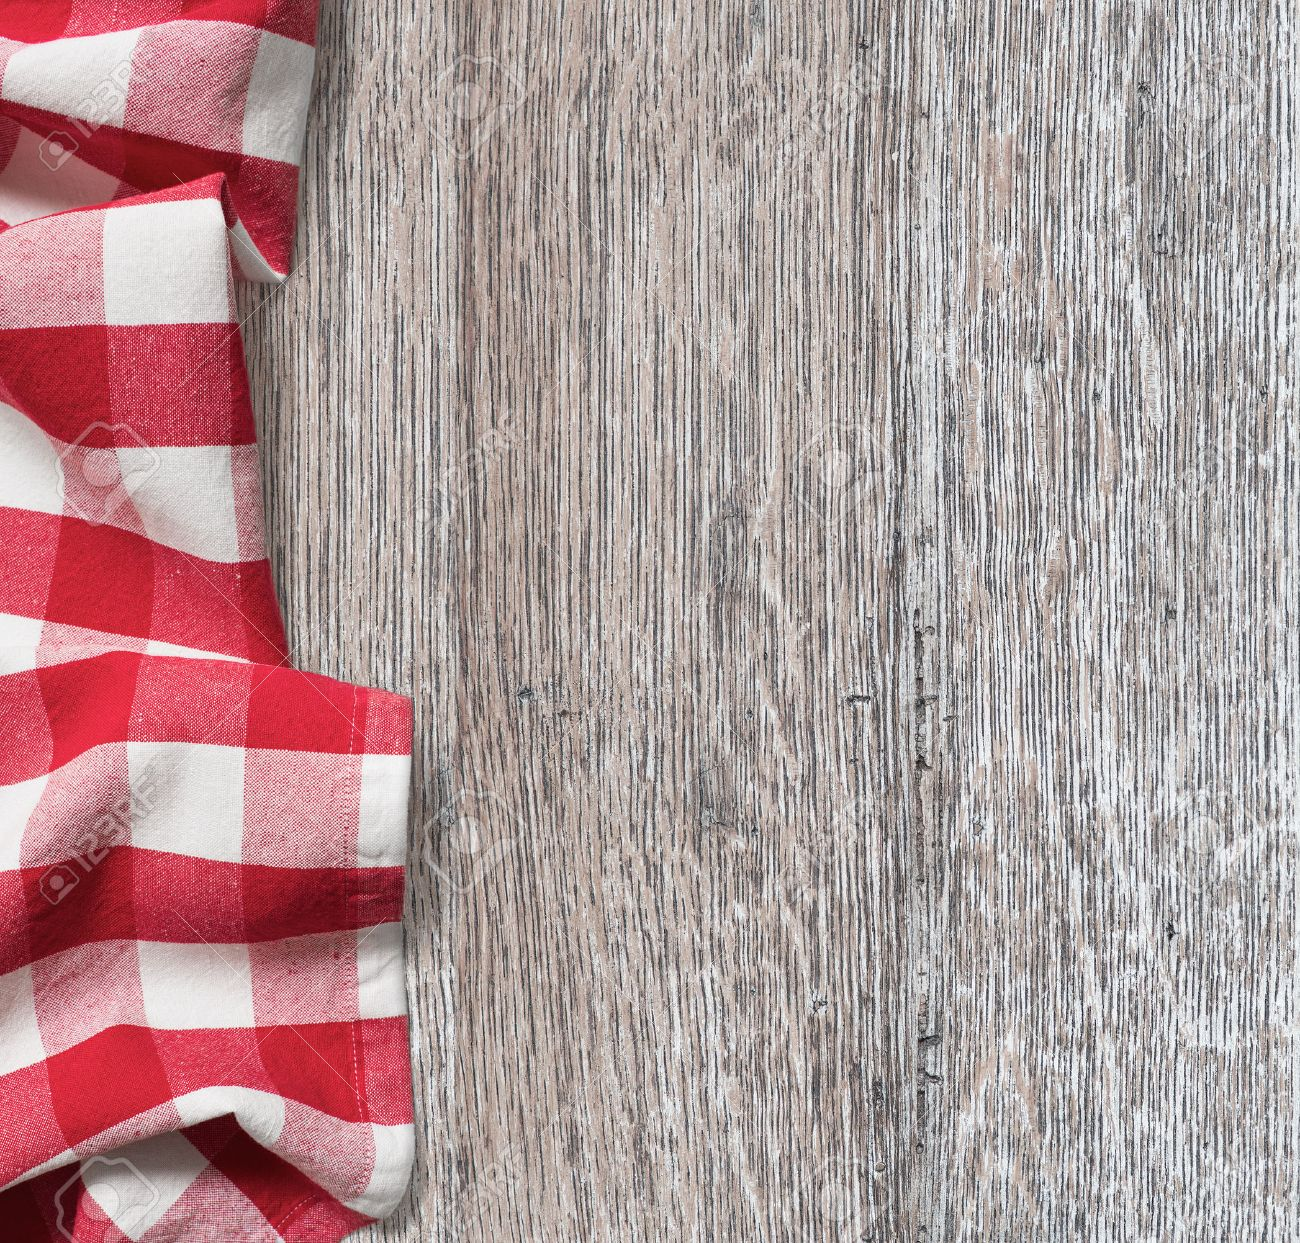 Kitchen Table Background rough wood kitchen table with red picnic cloth background stock